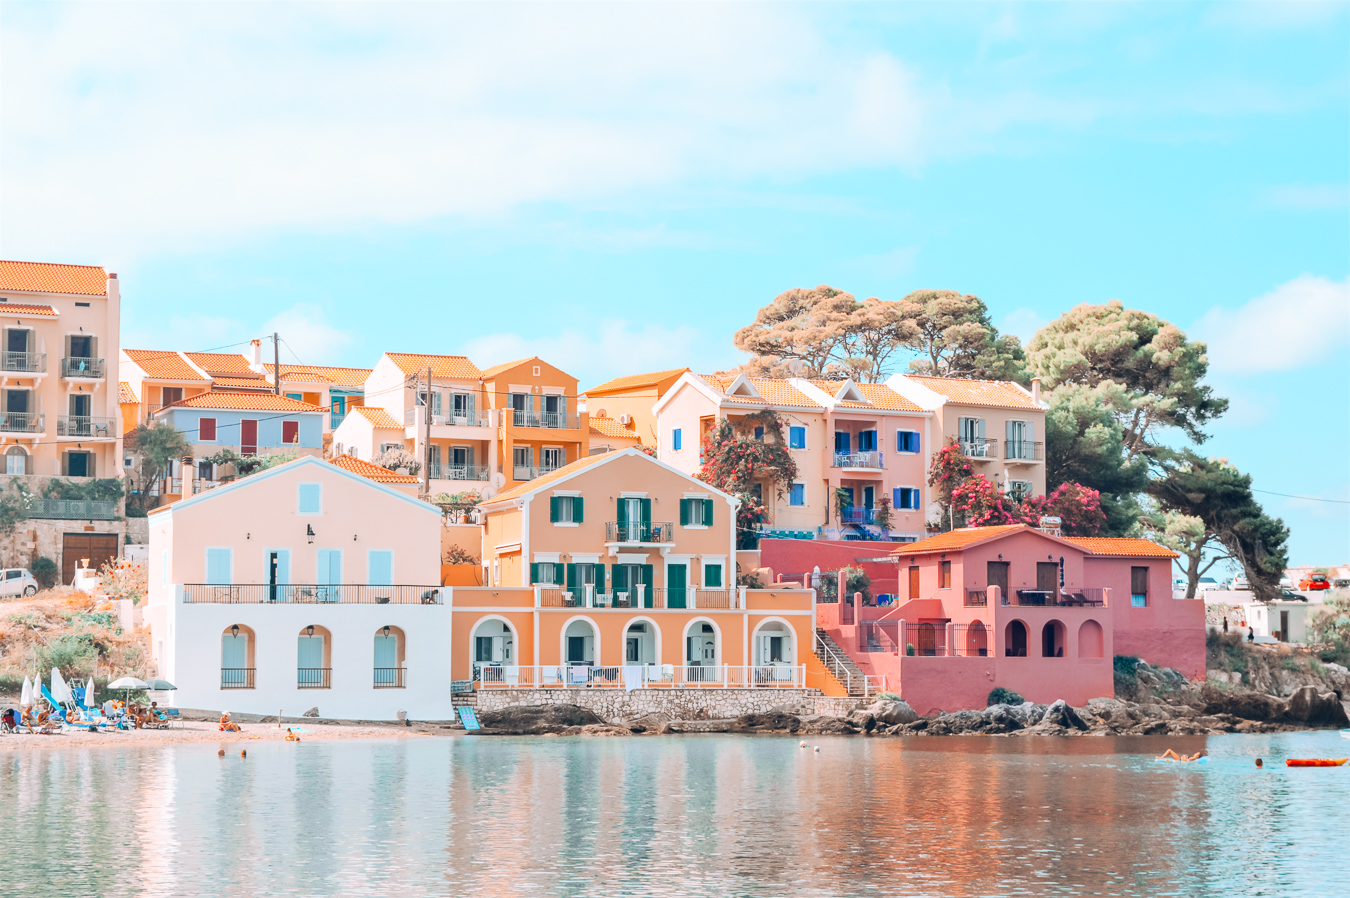 Colorful houses in Kefalonia, Greece